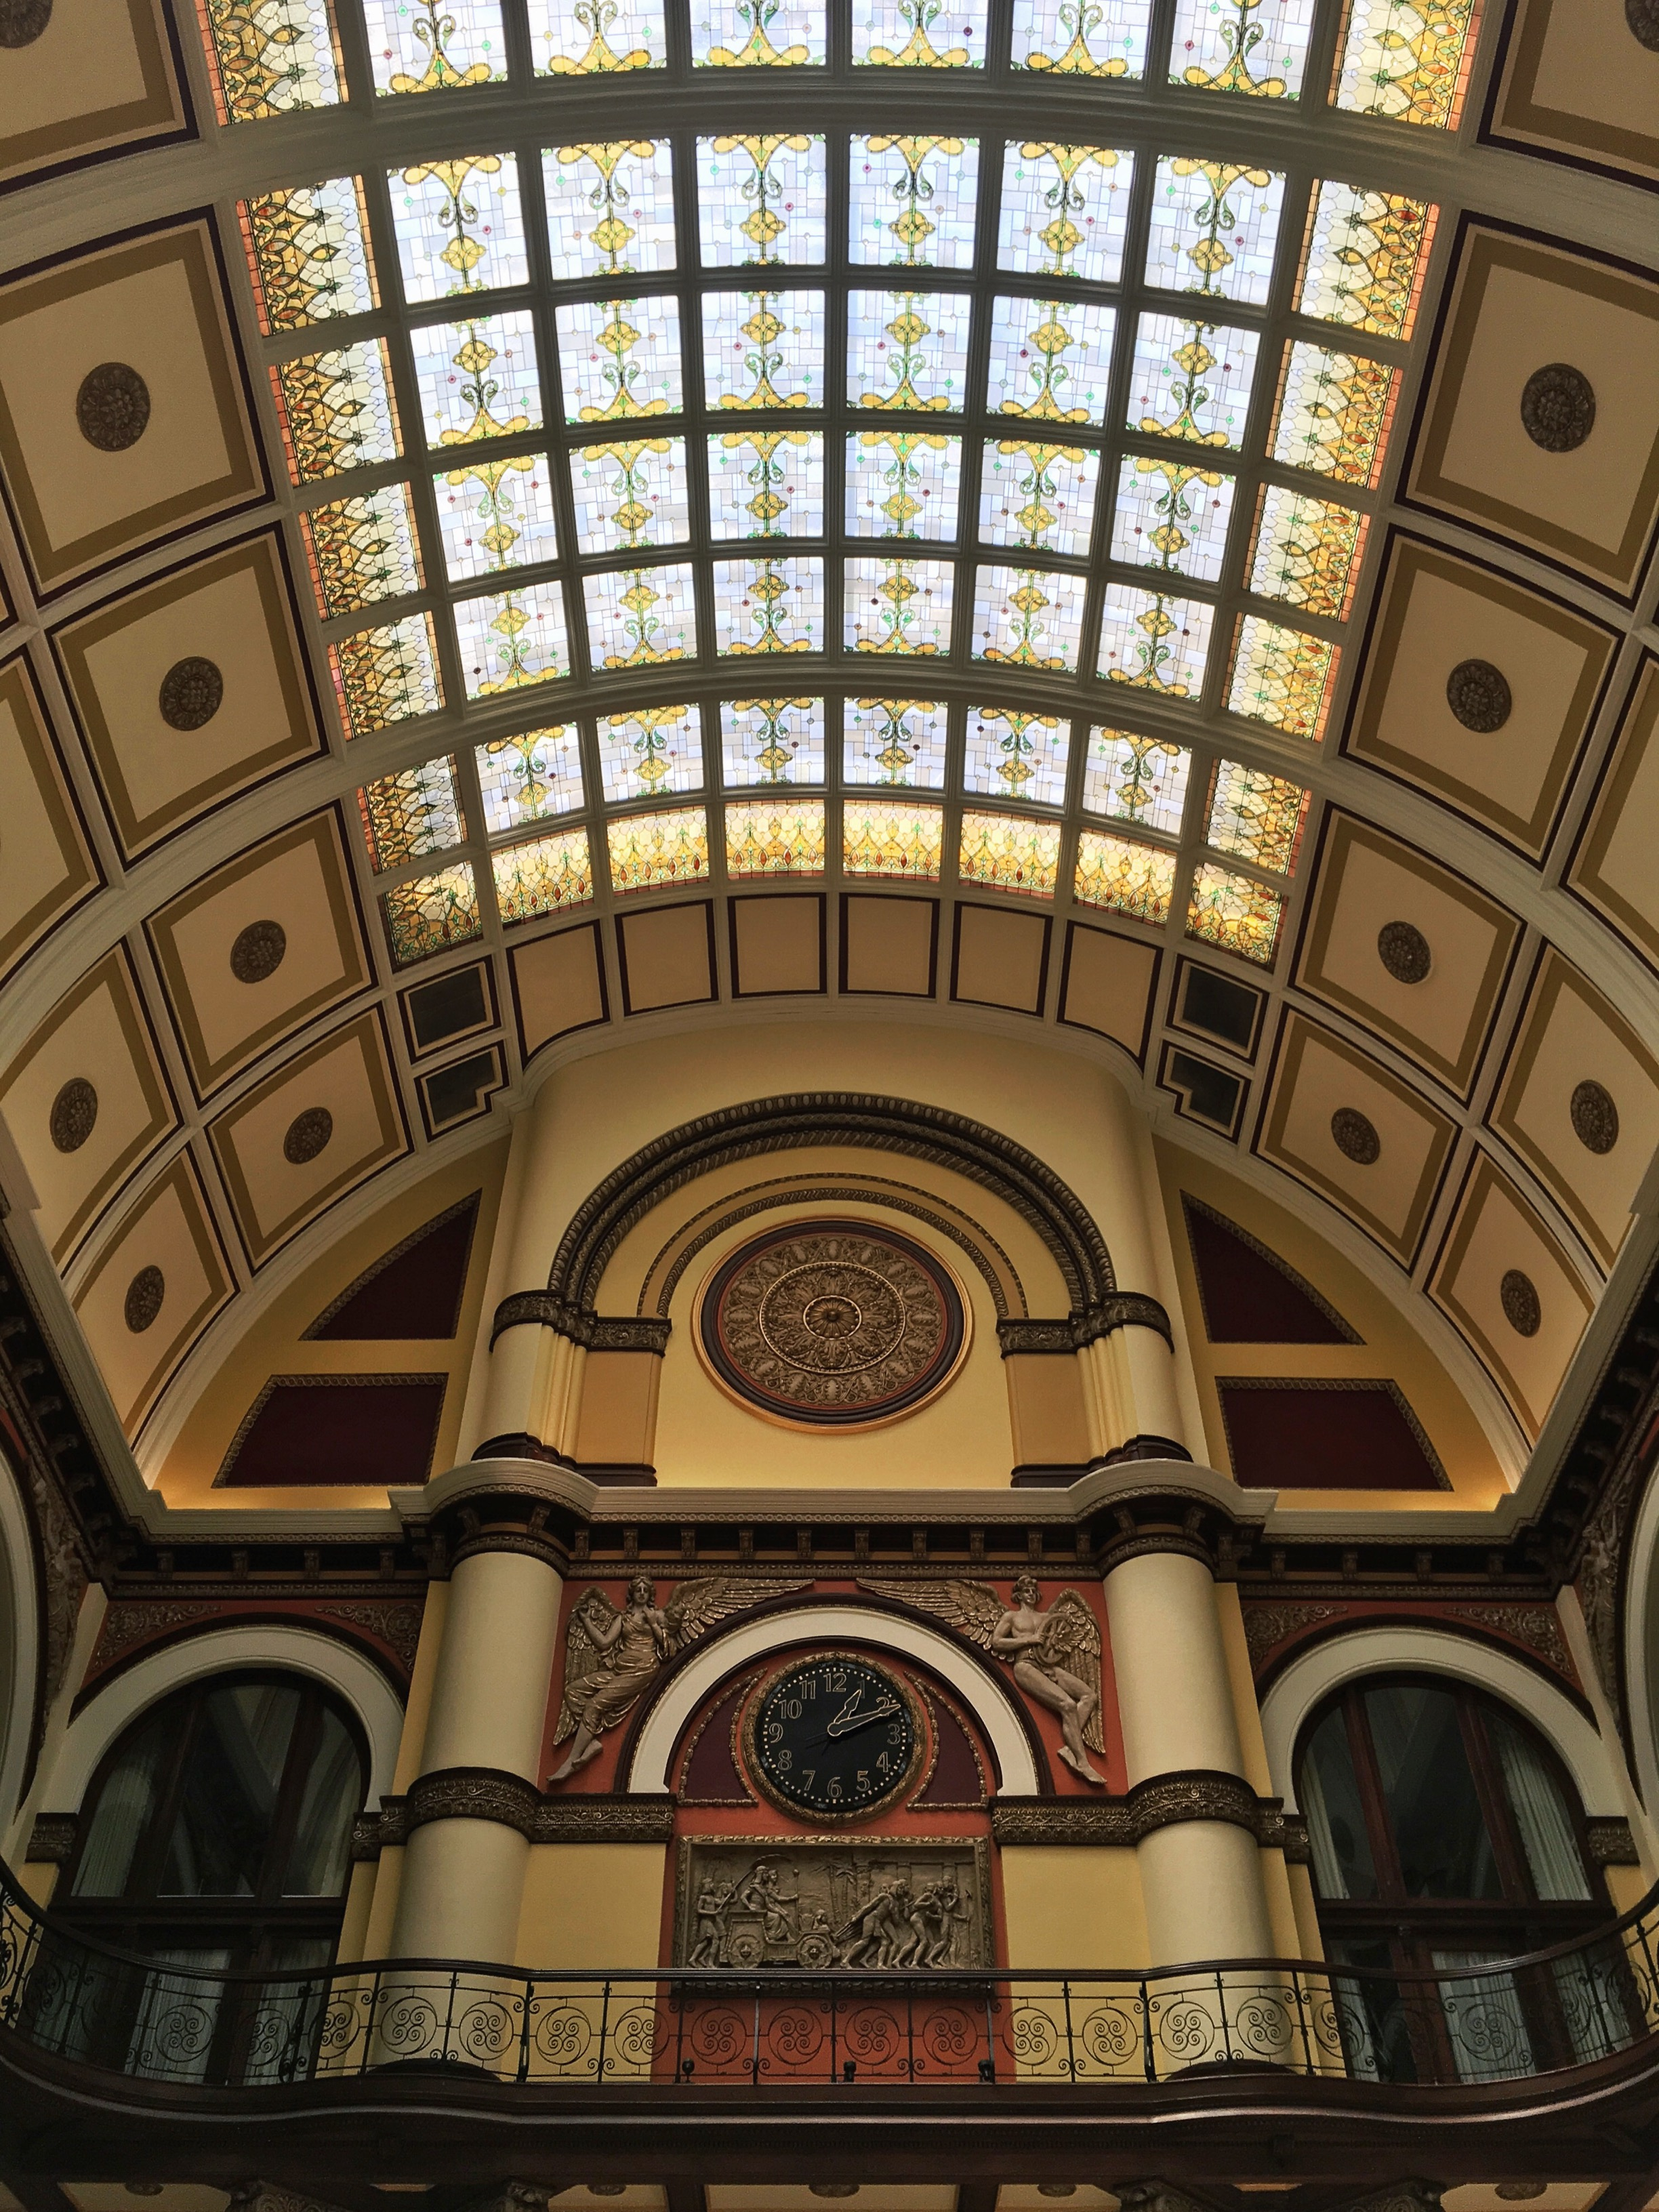 We did check out the stunning lobby of the Union Station Hotel on our morning jaunt.